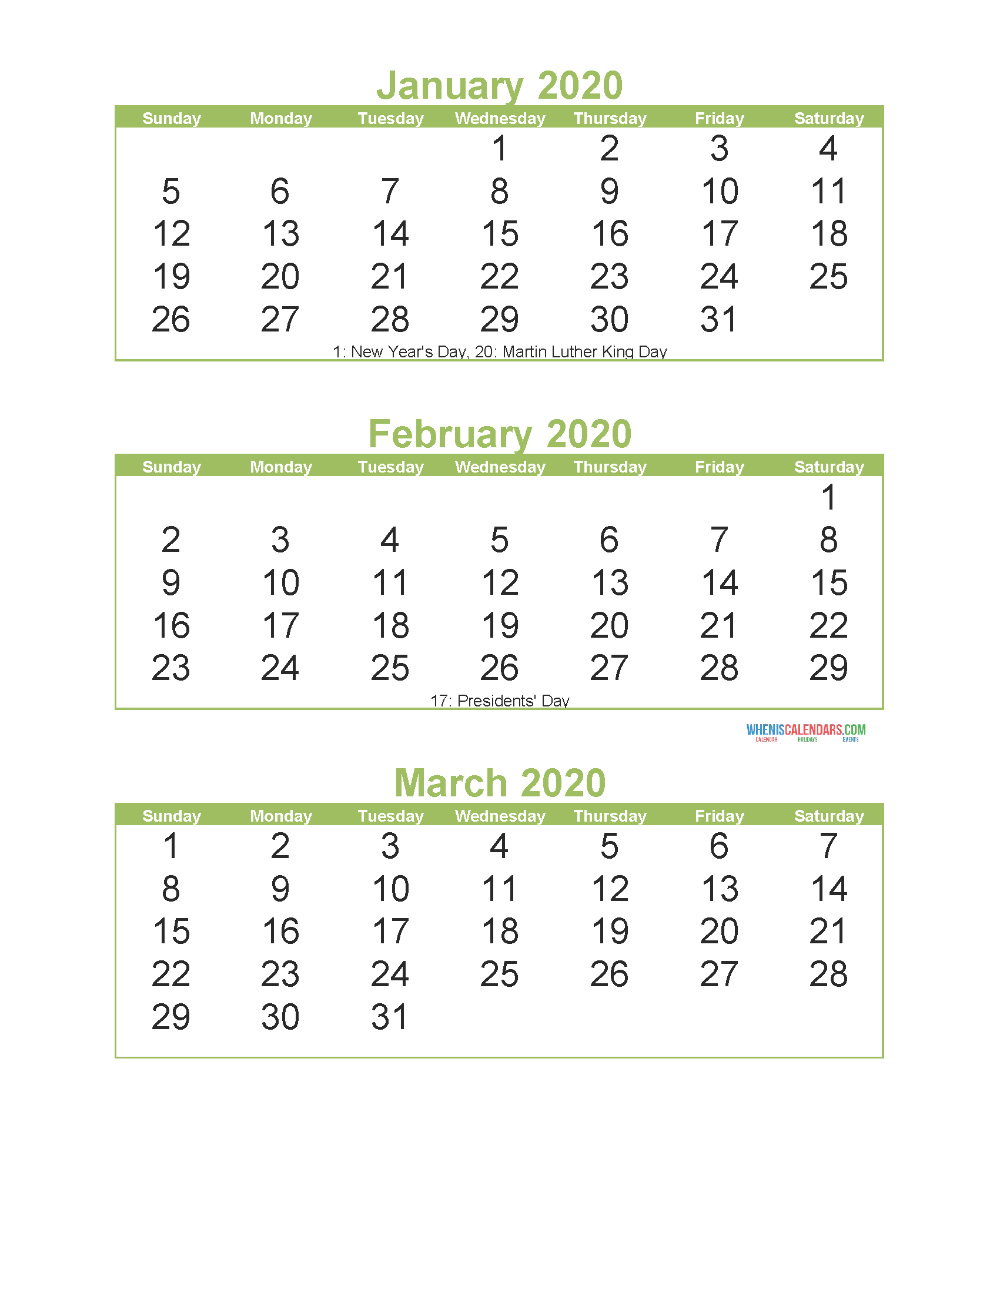 Free Printable 3 Month Calendar 2020 January February March Free Printable 2020 Calendar Templates Calendar Template Calendar Printables 3 Month Calendar